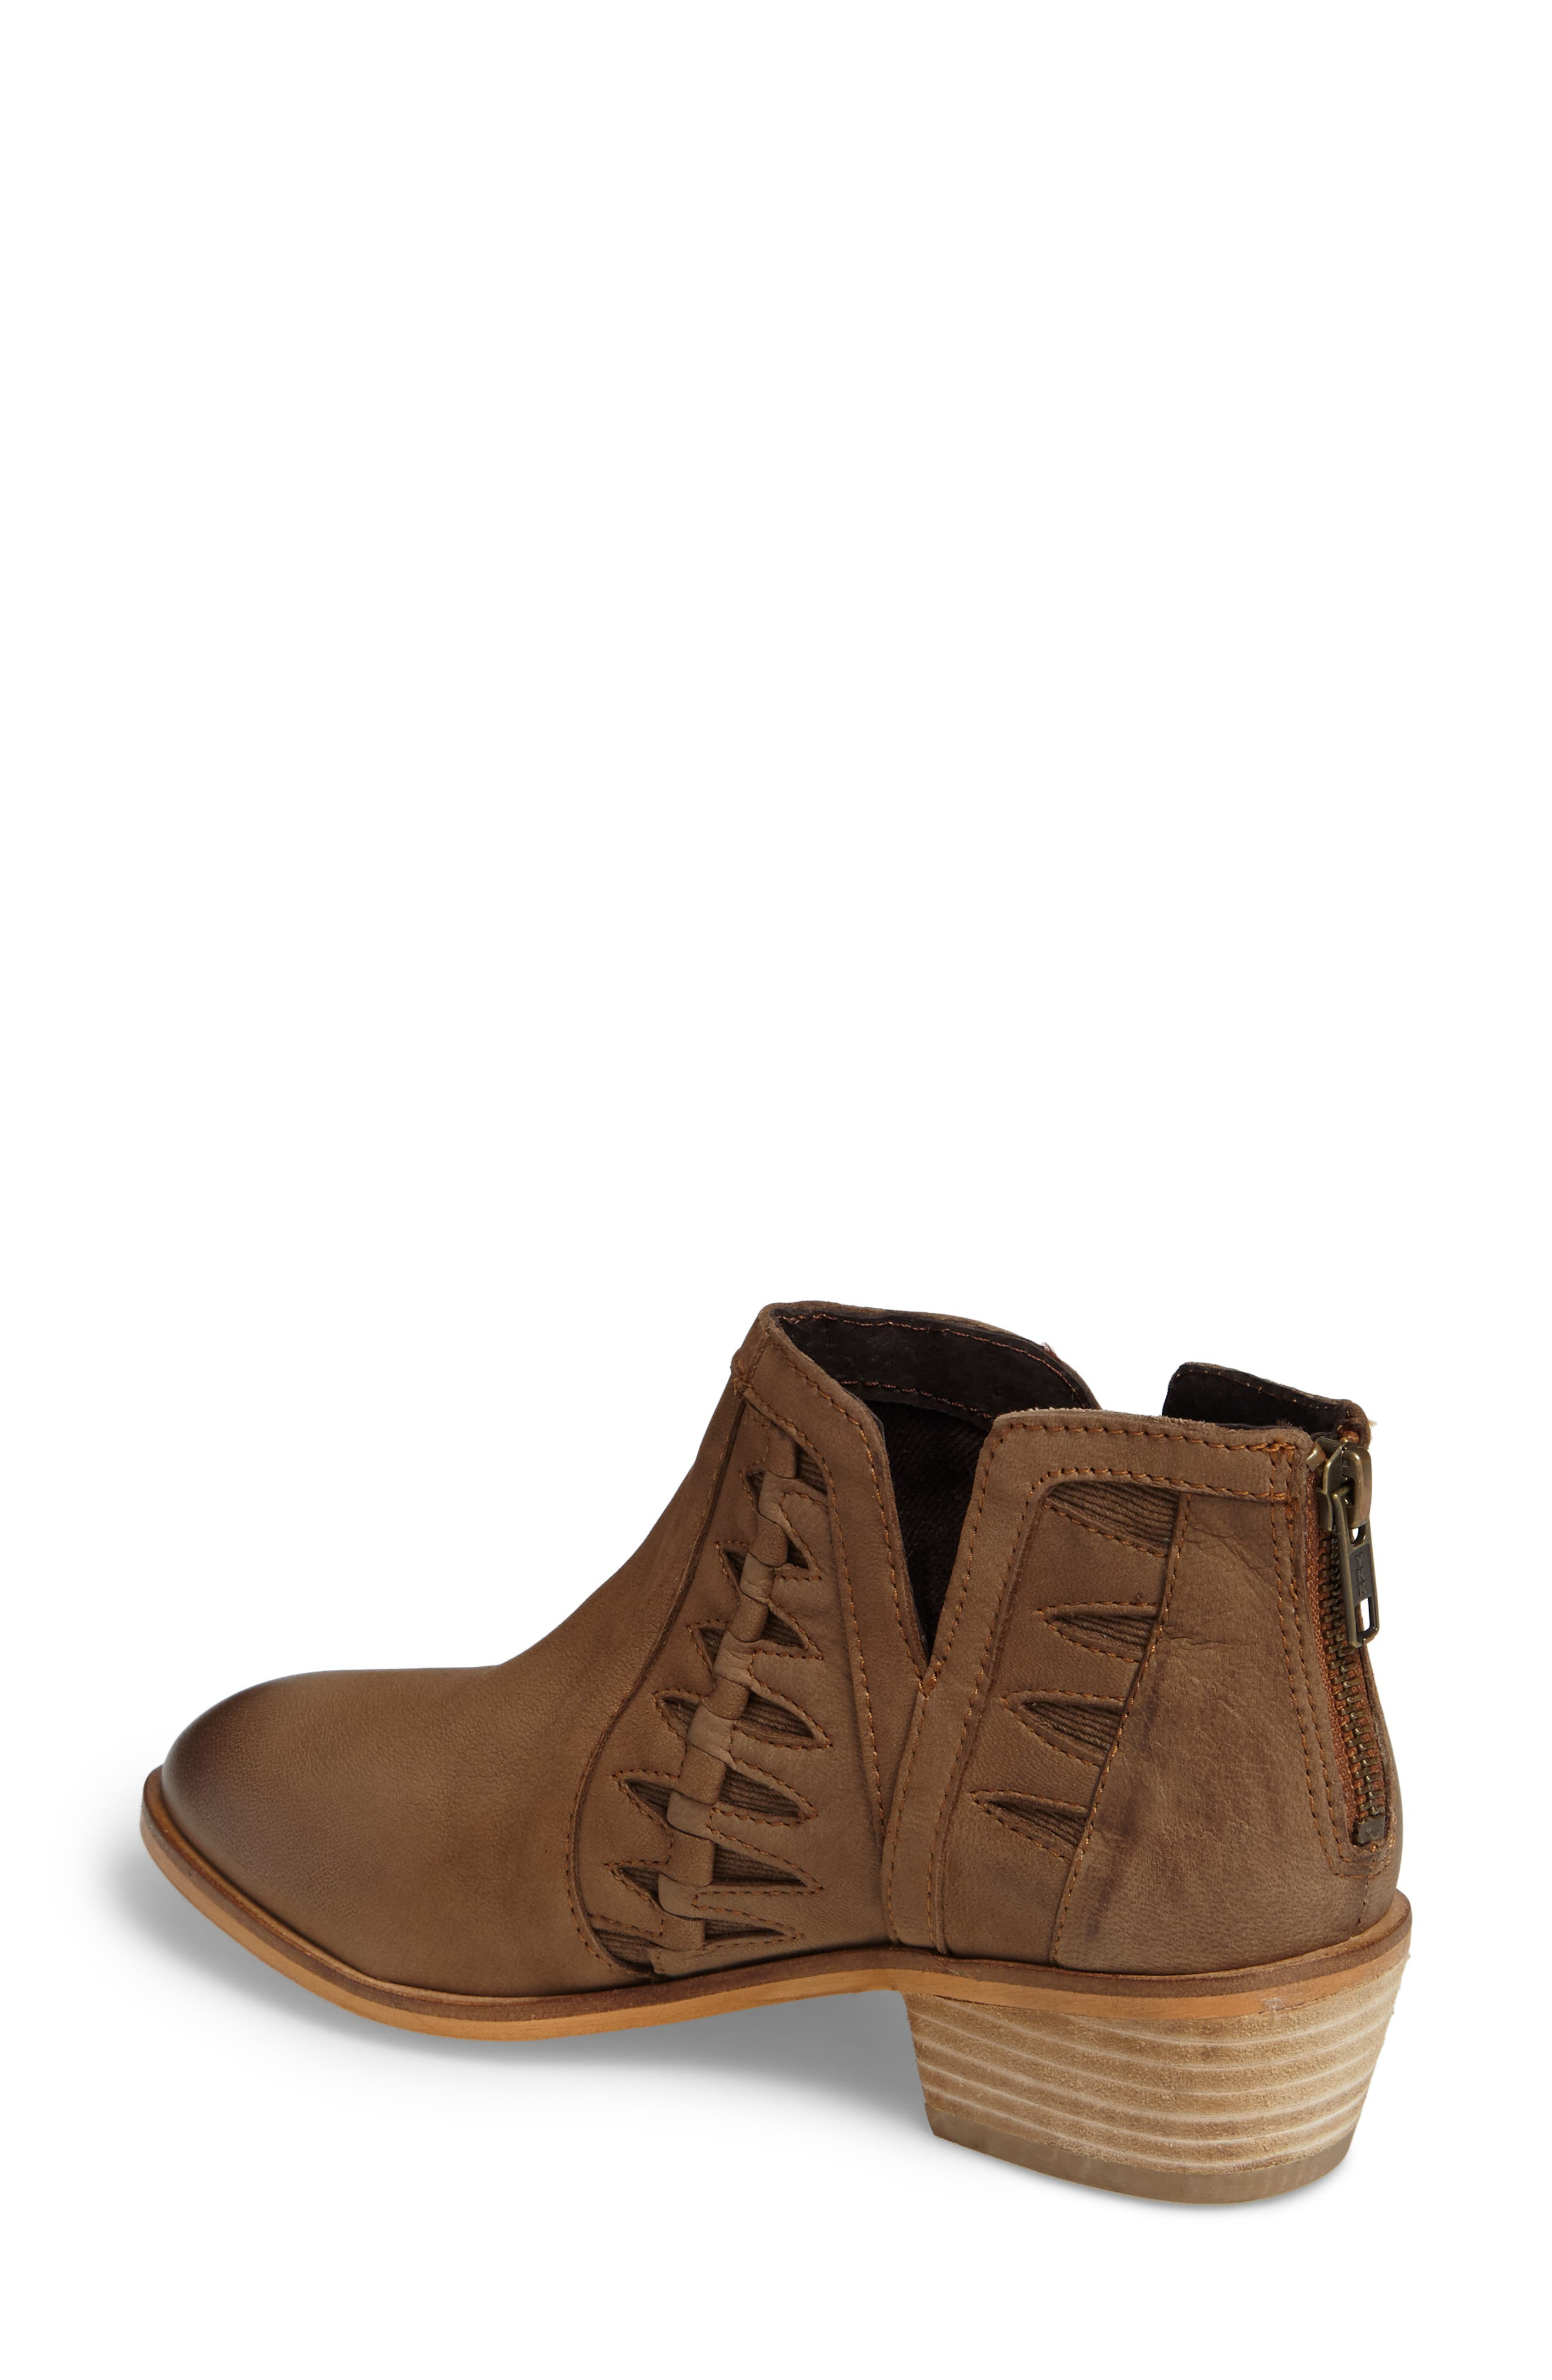 Yuma Bootie,                             Alternate thumbnail 2, color,                             Cognac Washed Nubuck Leather